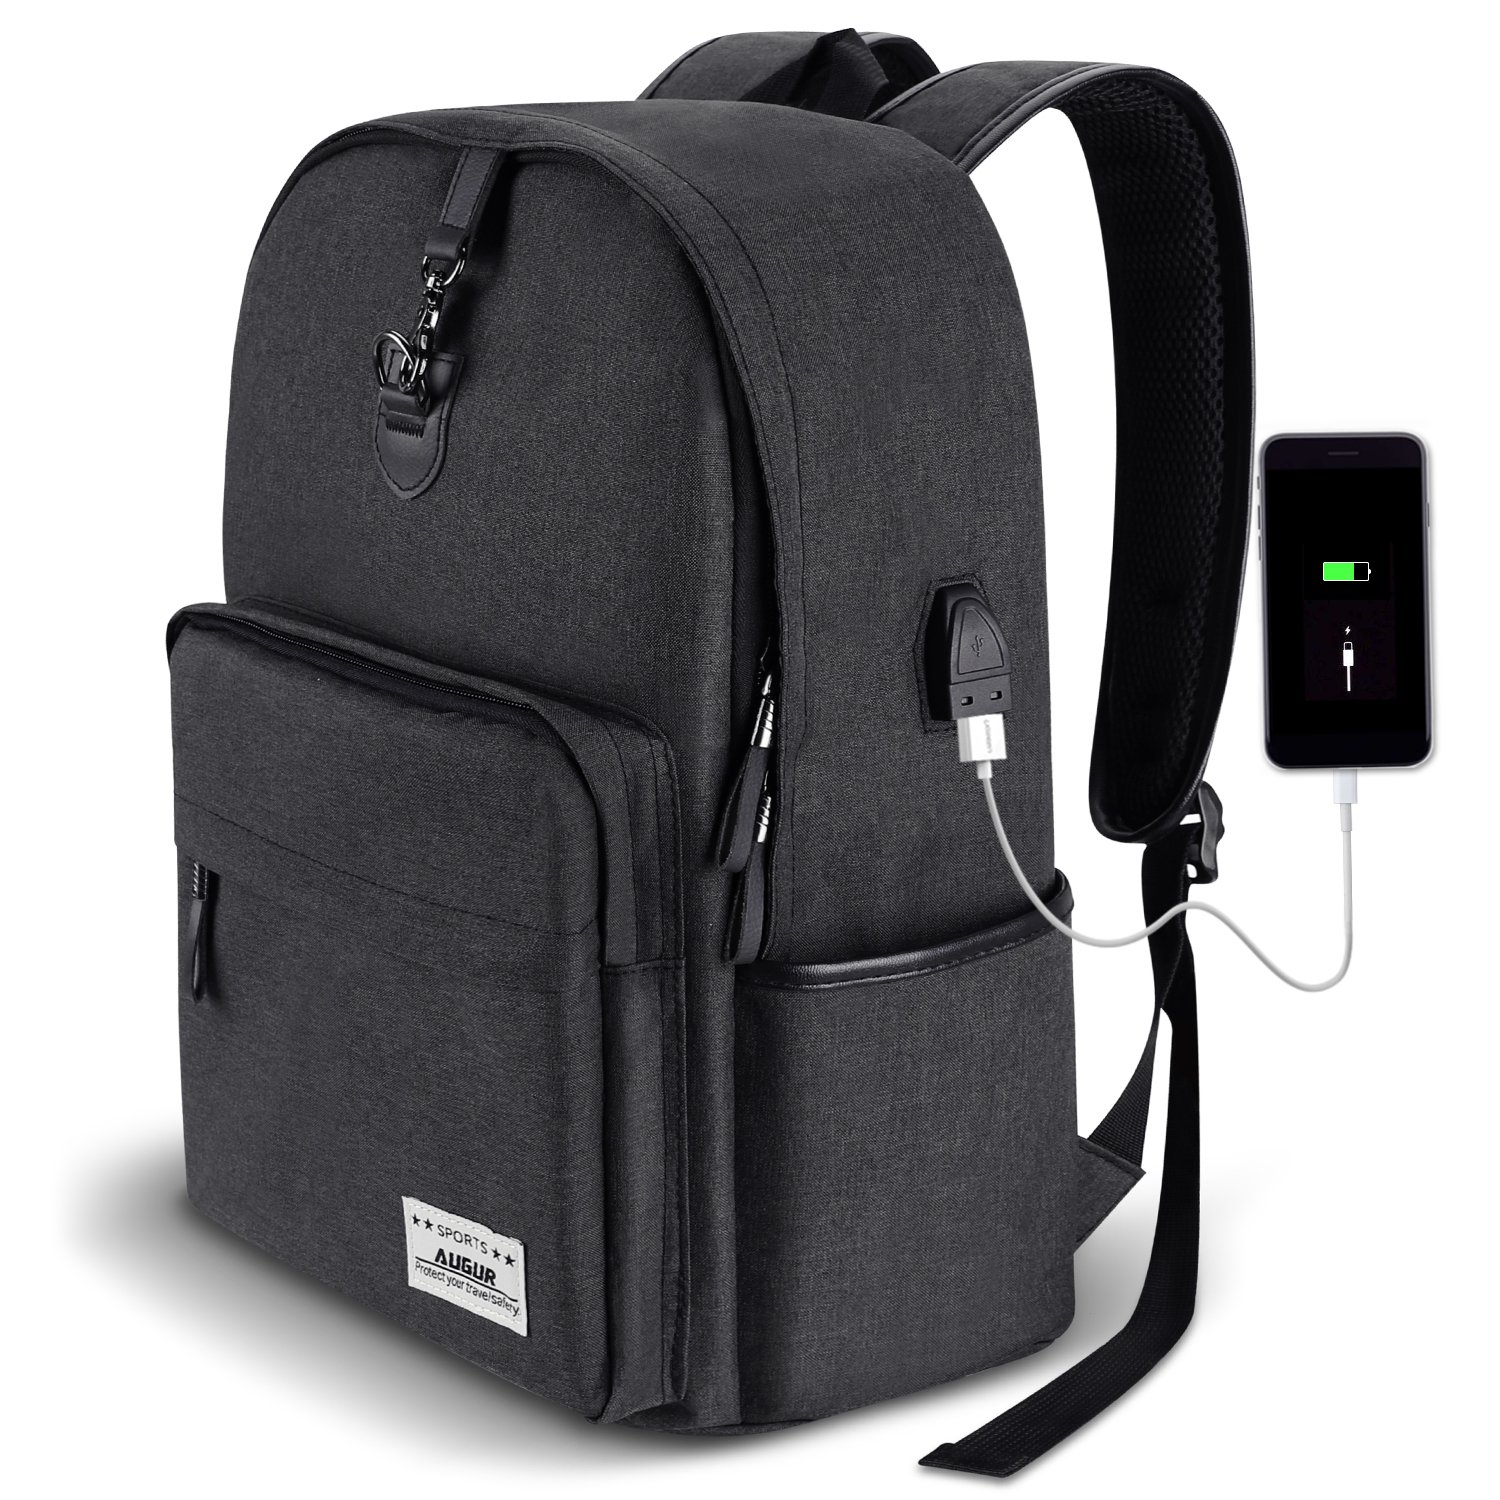 AUGUR Anti-theft Backpack Business Backpack School Bookbag with USB Charging Port,Water Resistant for Men & Women 35L